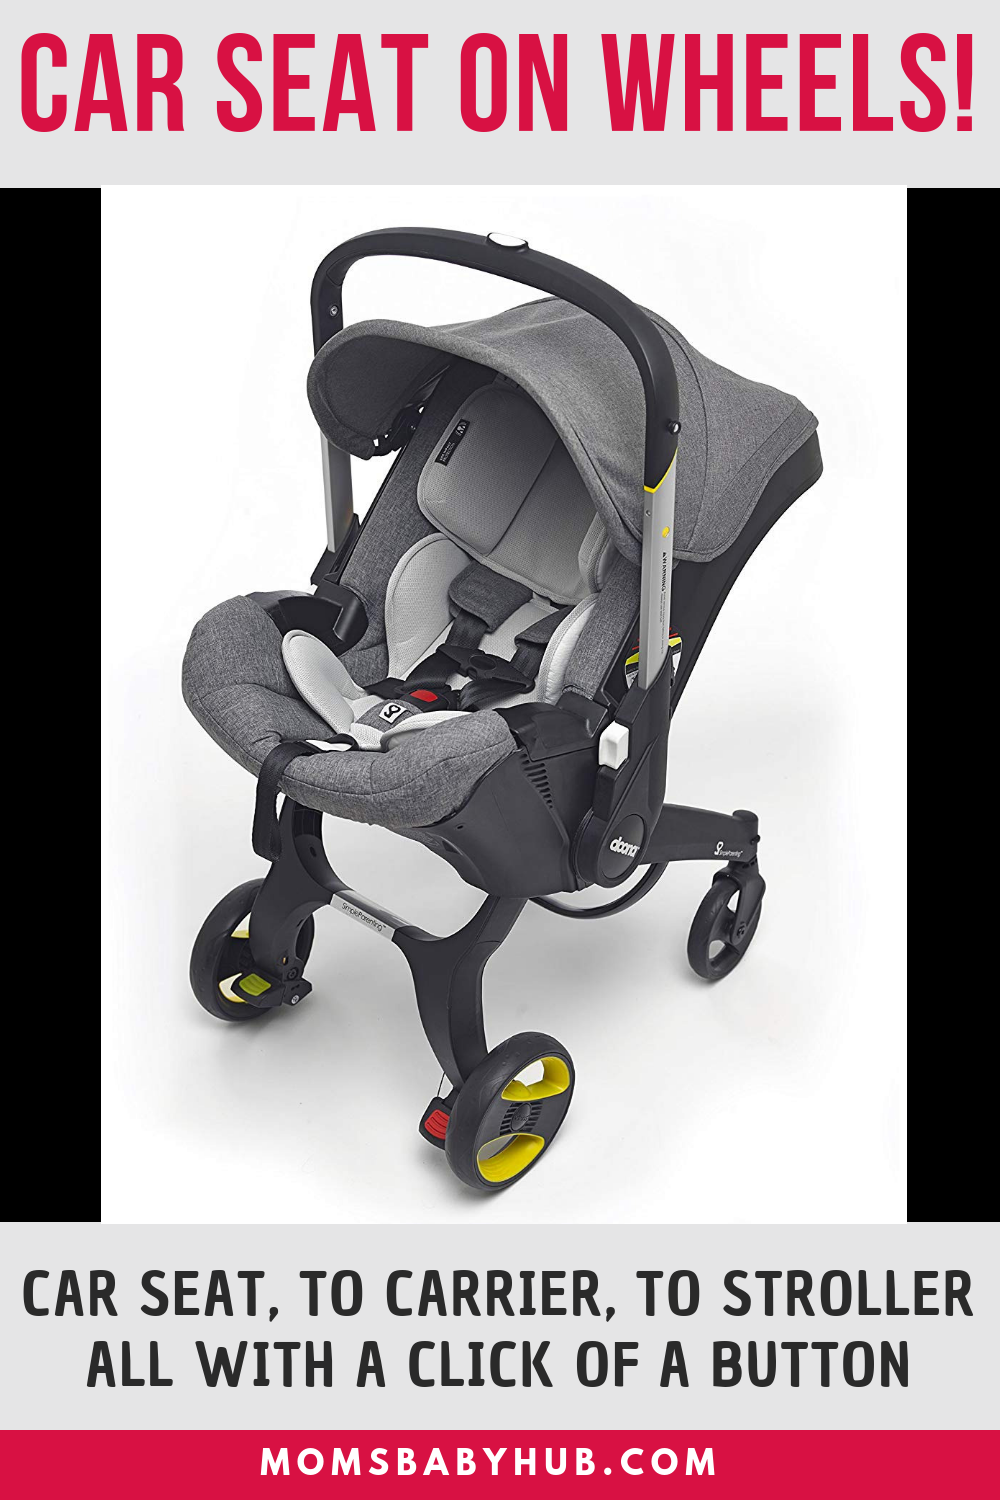 Doona Infant Car Seat Really Has A Wide Array Of Features That Make It Stand Out